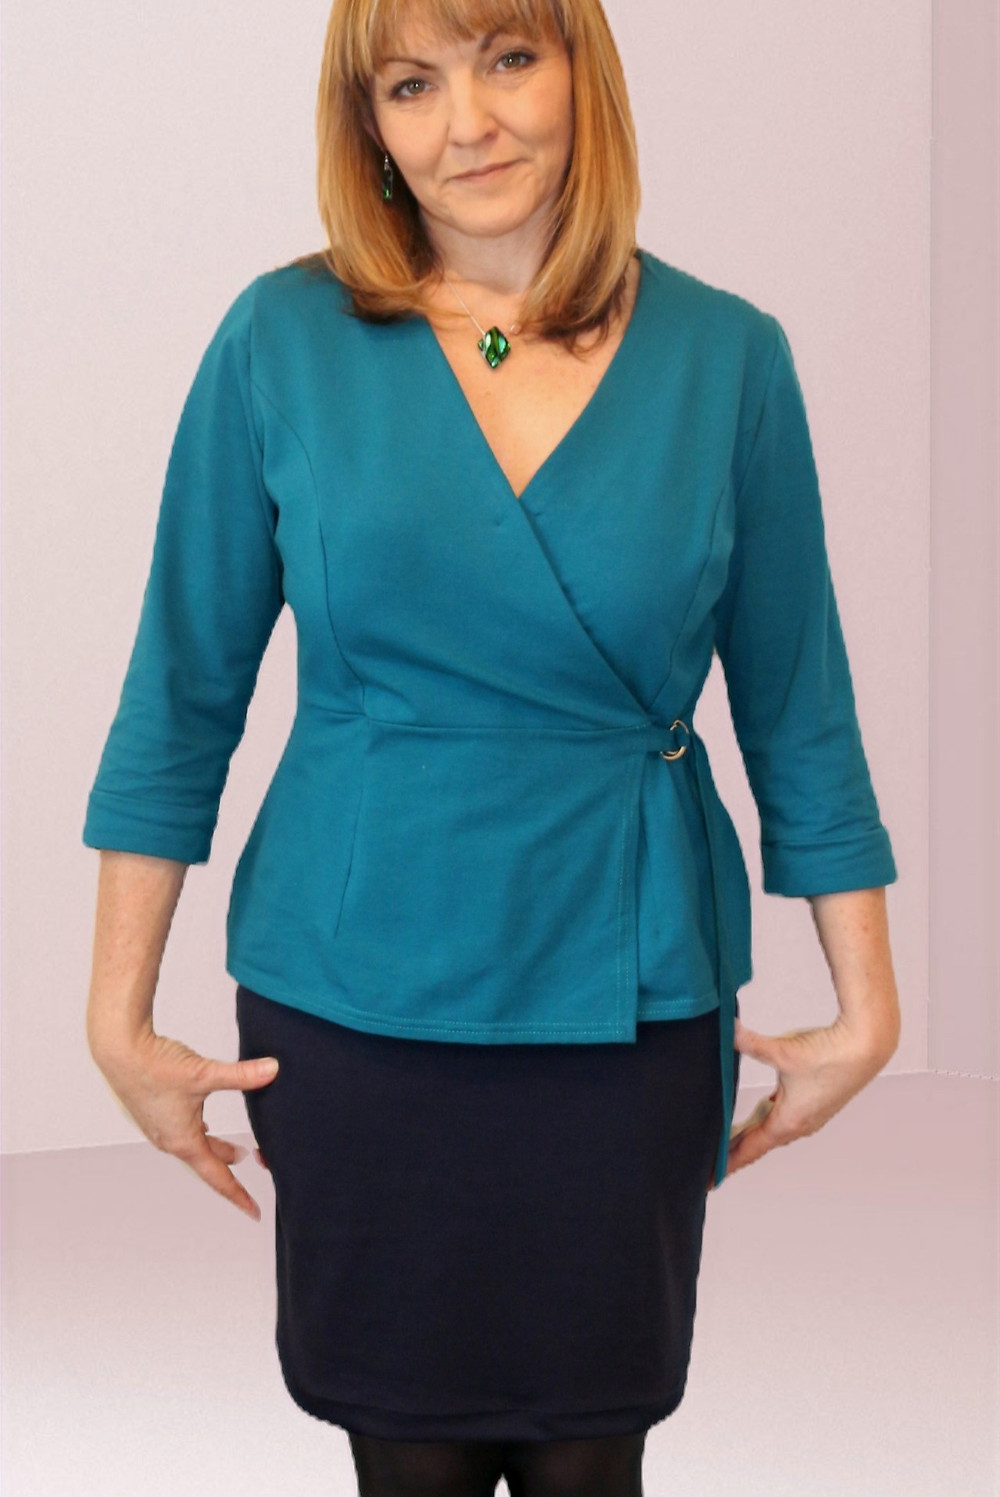 Simplicity 8735 pattern hack in cotton Jersey with D-links